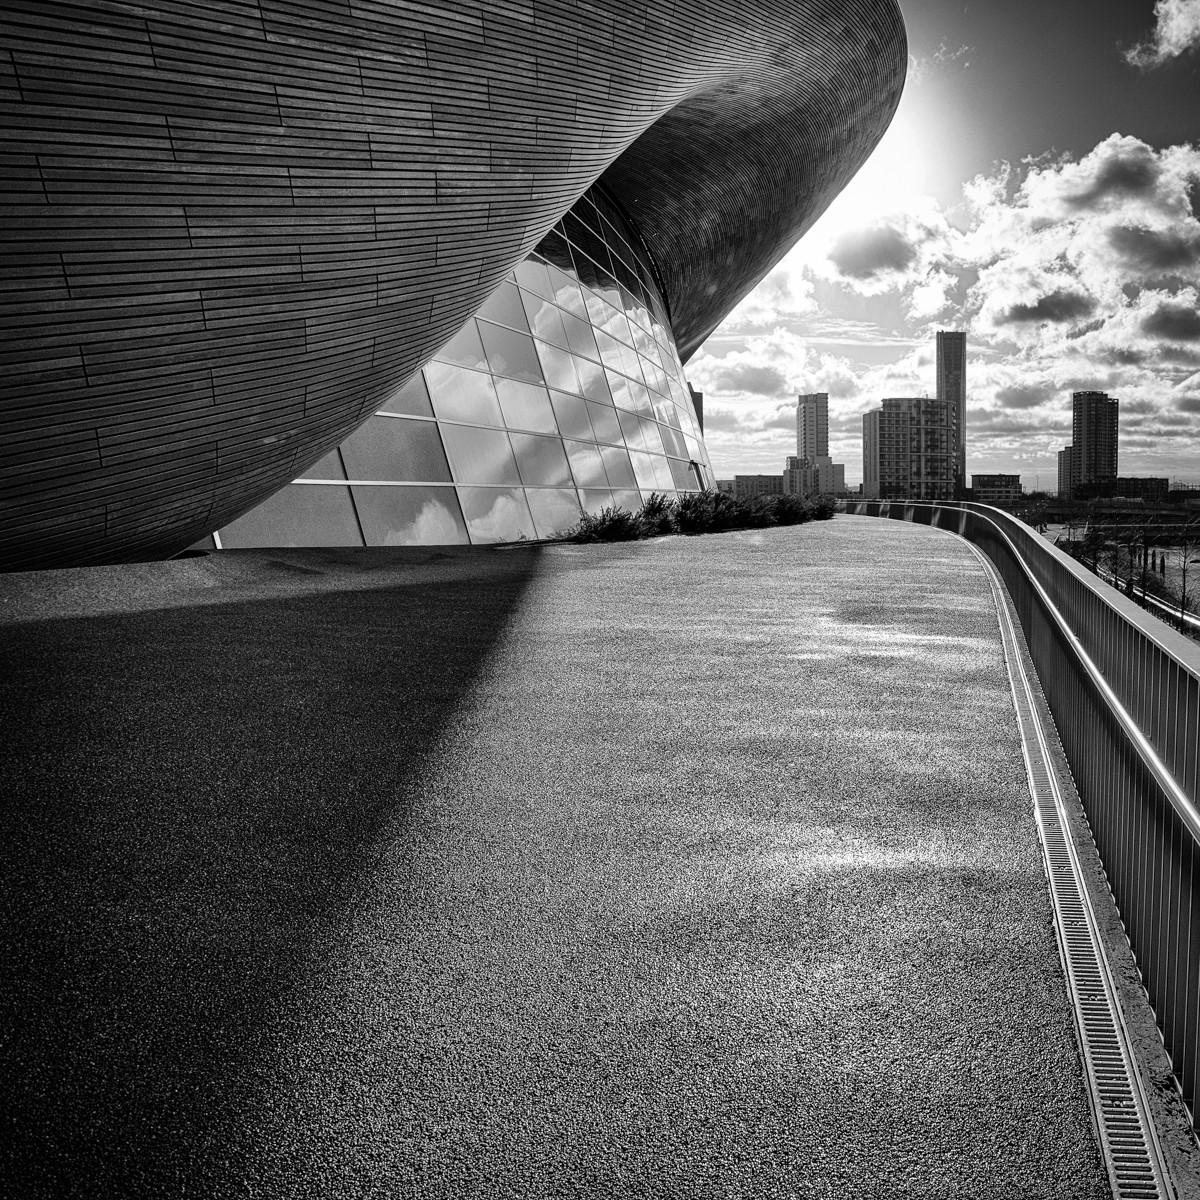 MONO - London Aquatic Centre by Nigel Bell (8 marks)